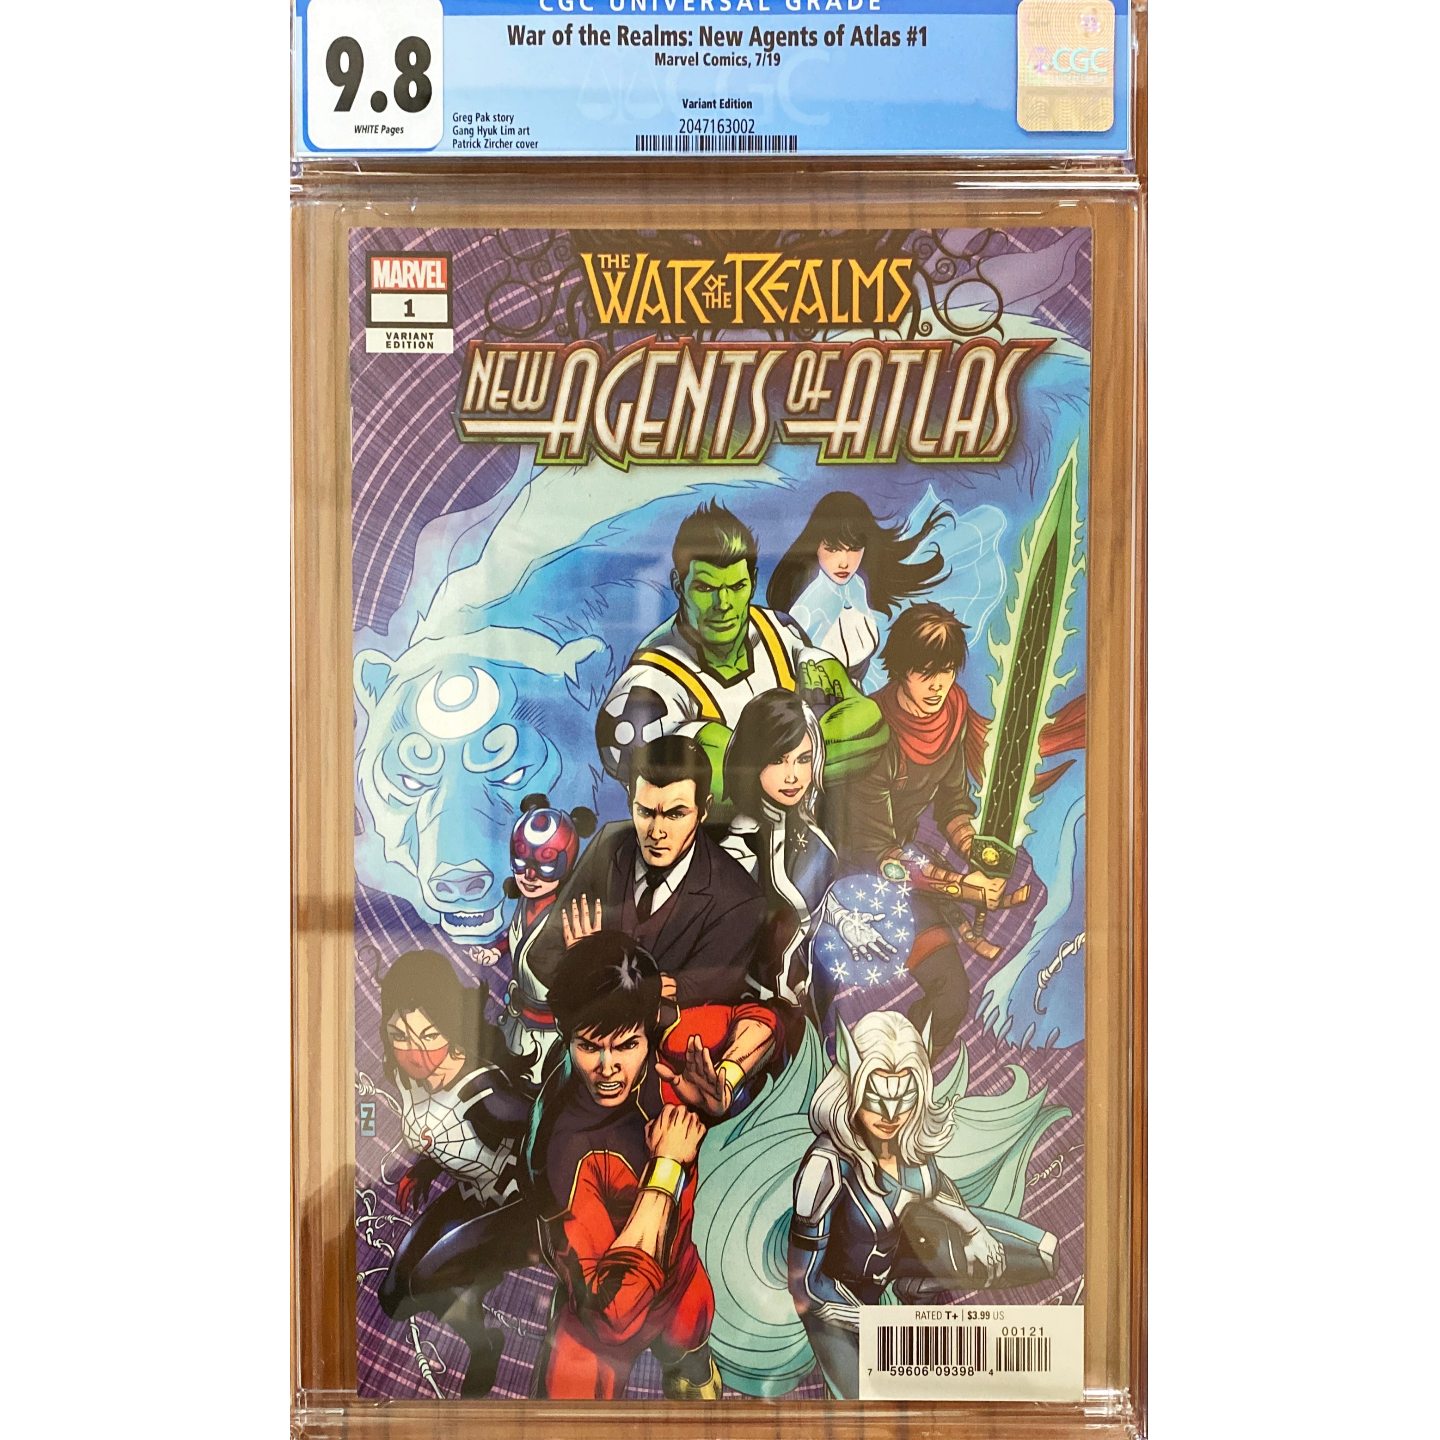 WAR OF THE REALMS : NEW AGENTS OF ATLAS #1 (1:50) CGC 9.8